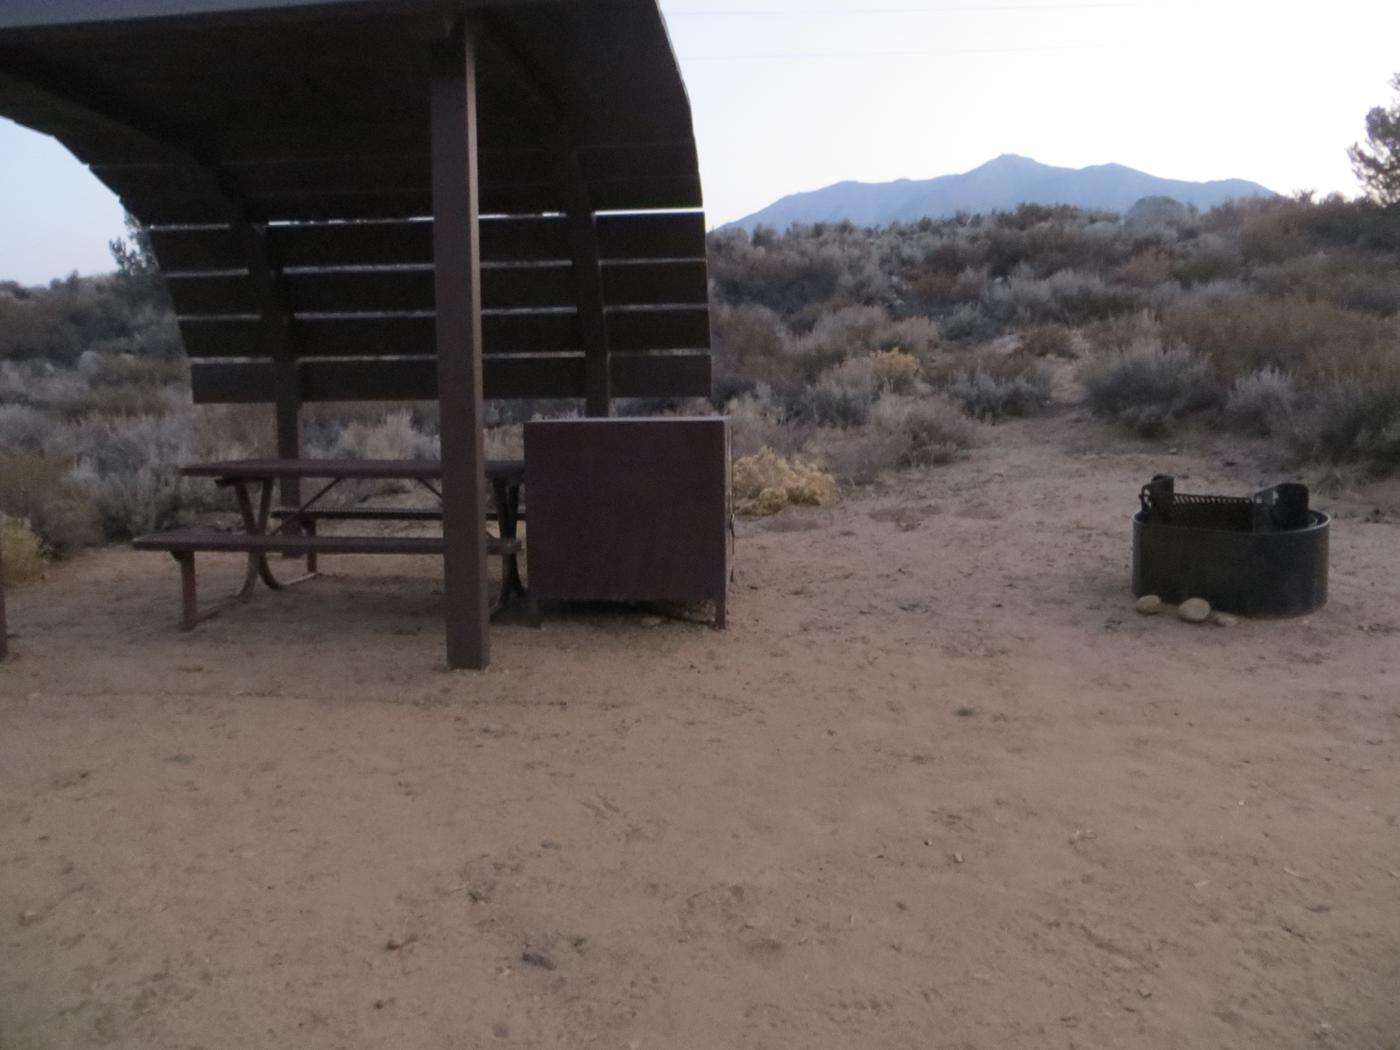 Tuff Campground site #24 featuring the shaded picnic area with camping space and fire pit by the mountain side.